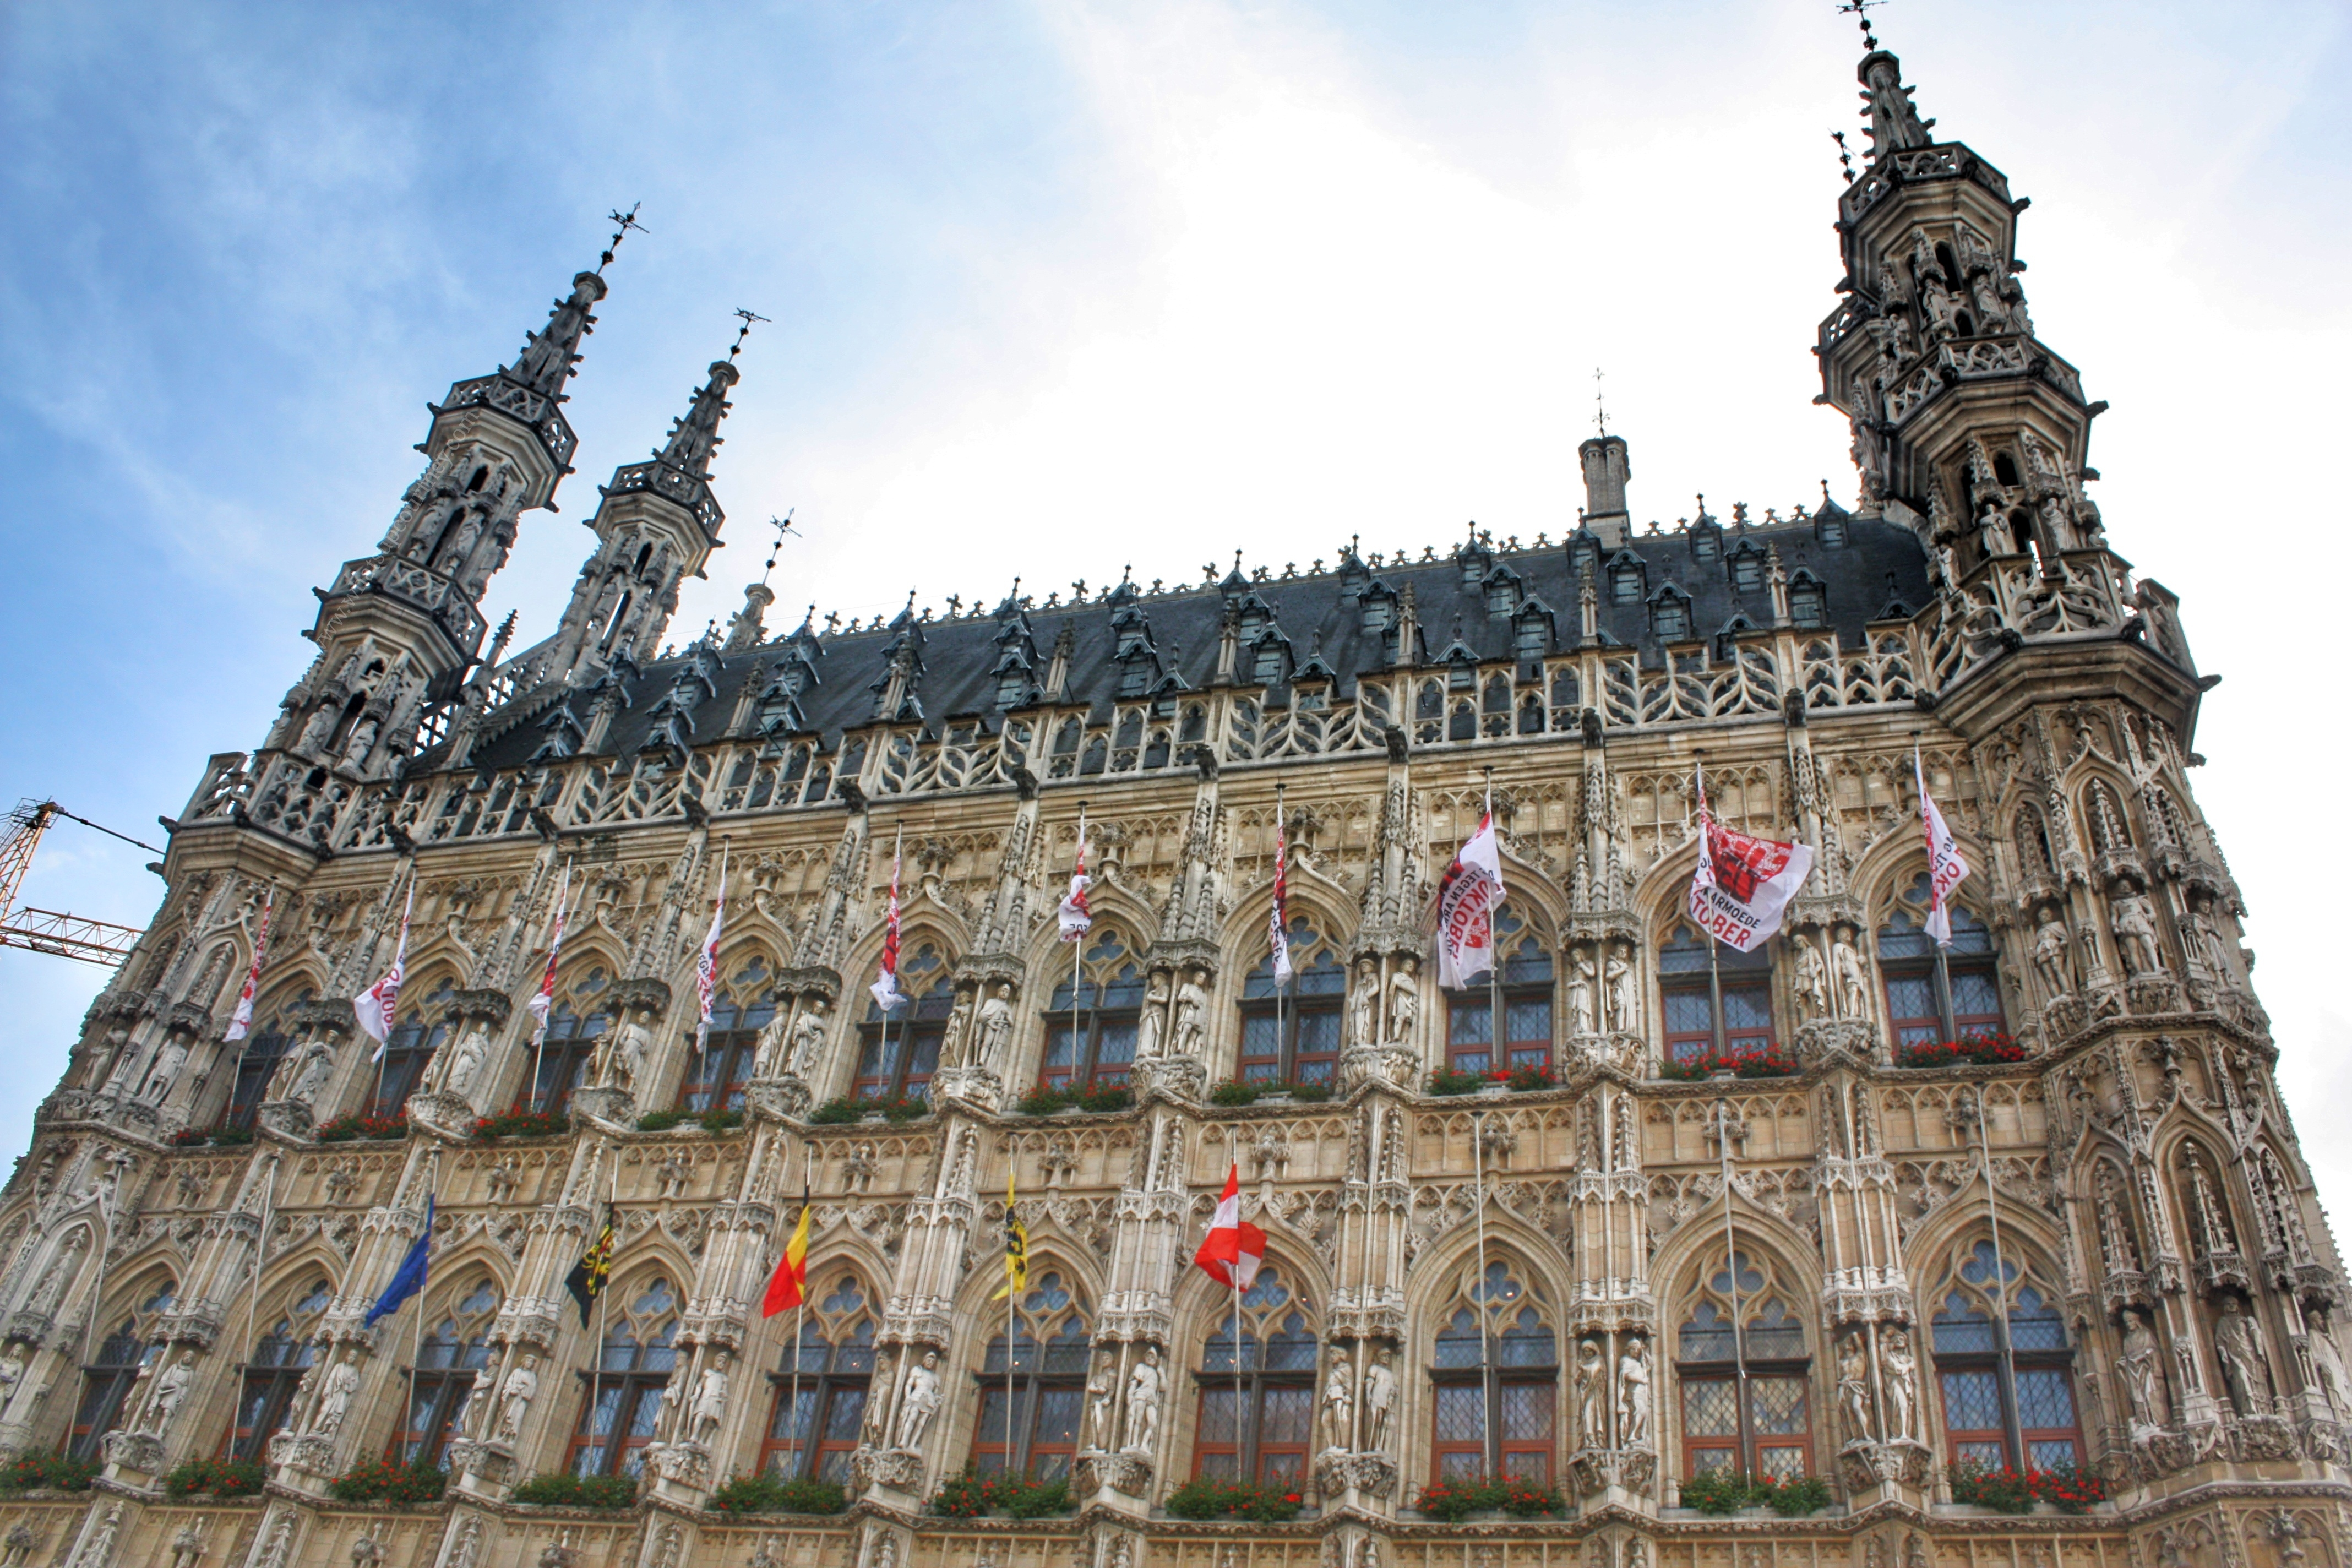 Stadhuis - the iconic town hall located in the centre of Leuven with gothic architecture ,read more about what you can do in Leuven in 48 hours at www.whatsupcourtney.com #Leuven #travel #travelguide